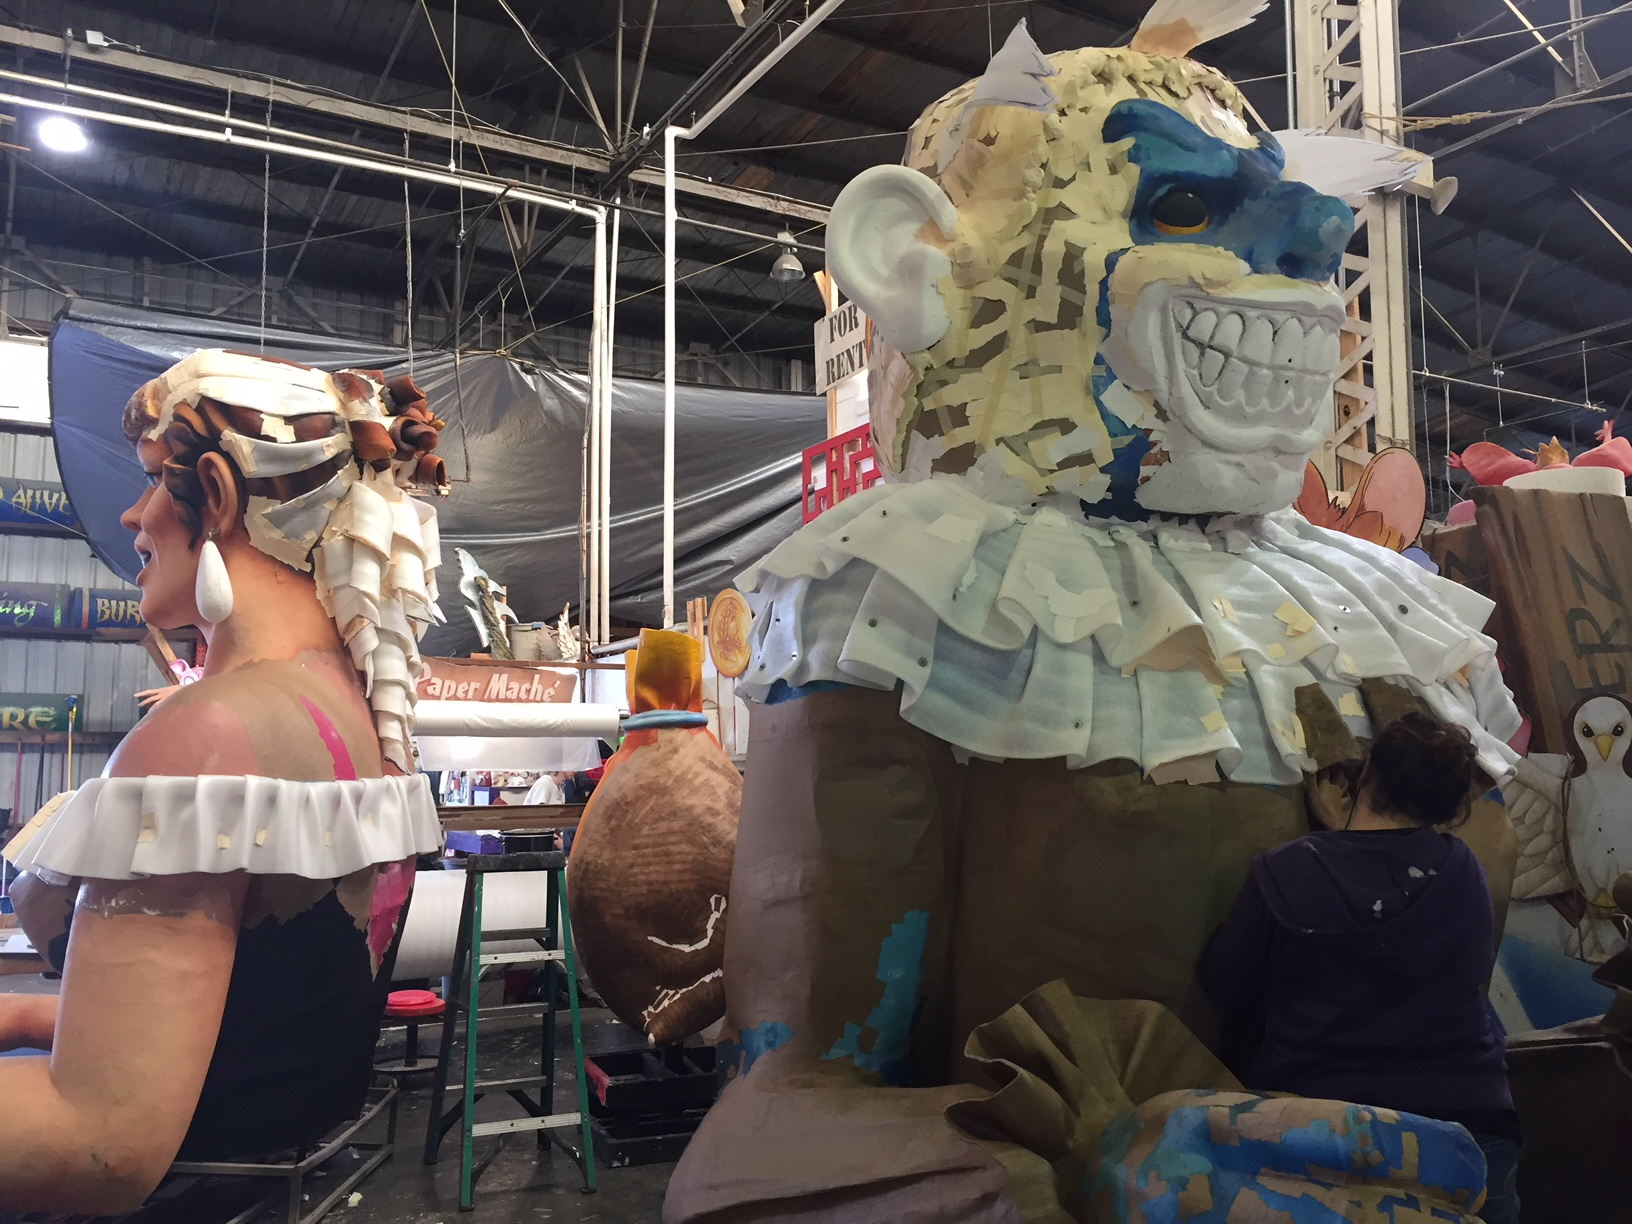 Here you can see a craftsperson changing up existing fiberglass floats by adding paper mache and paint to last year's models for a whole new look.